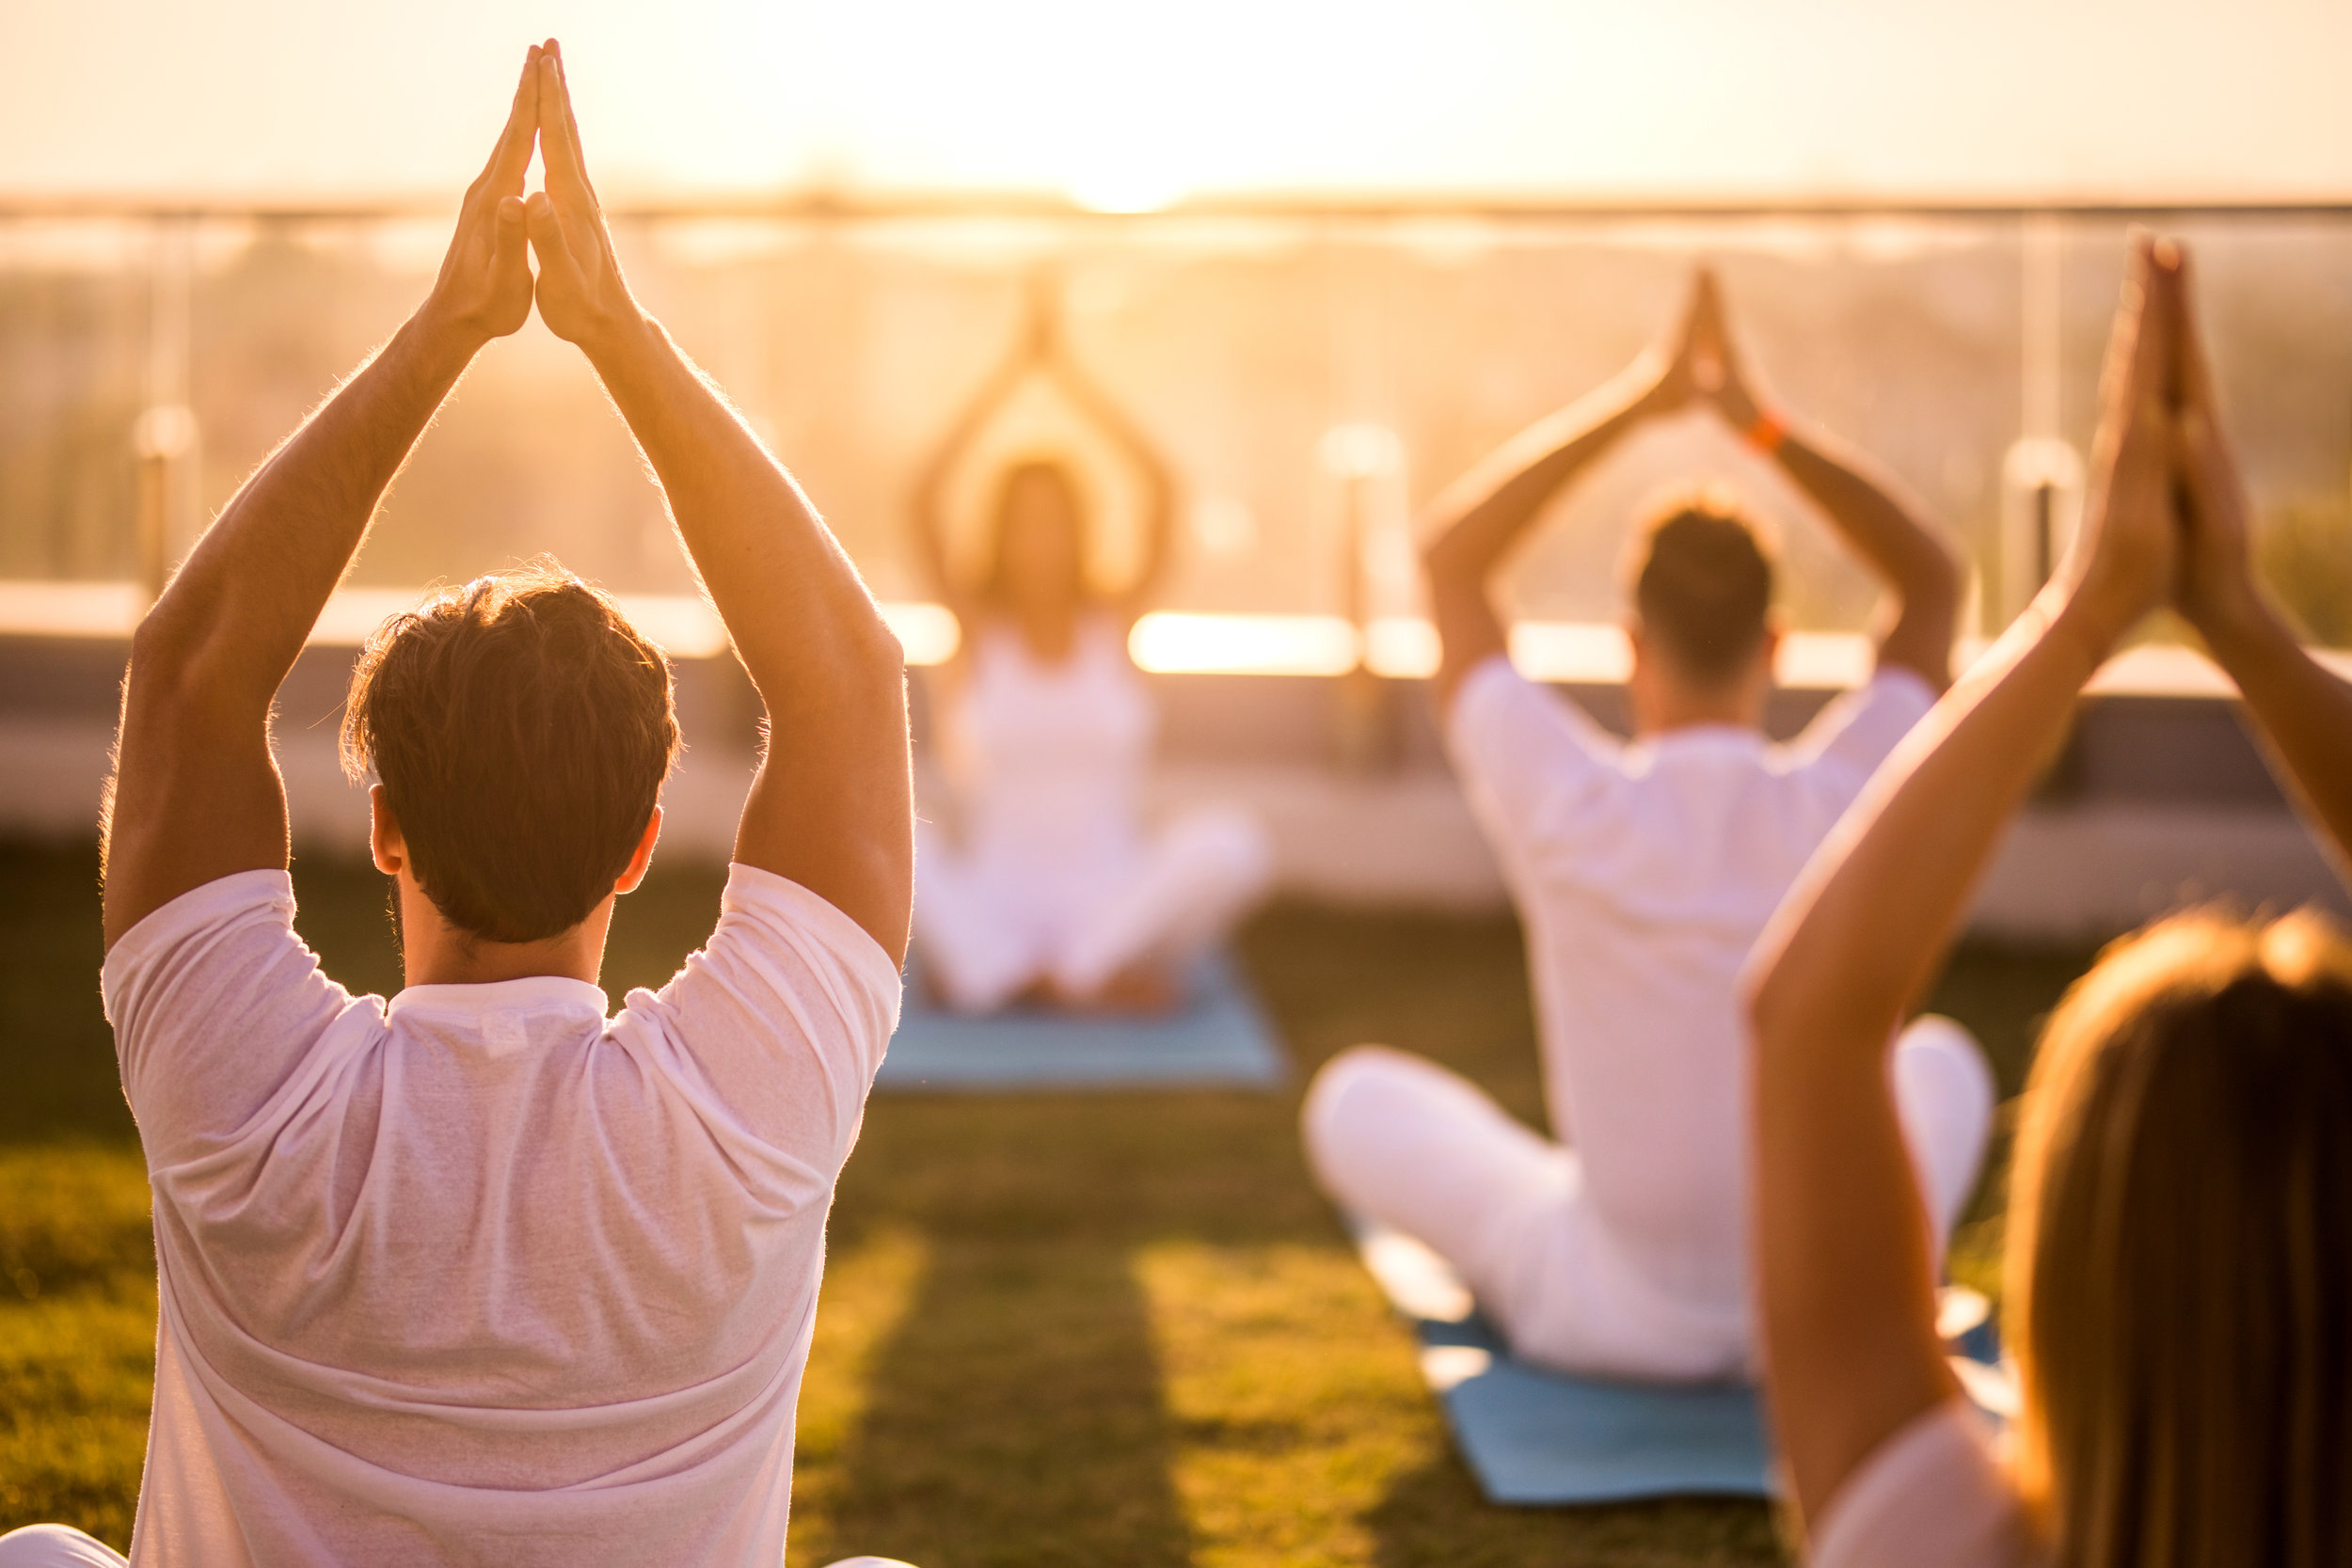 Rear-view-of-group-of-people-doing-Yoga-meditation-exercises-on-a-terrace.-888019184_6720x4480 (1).jpeg